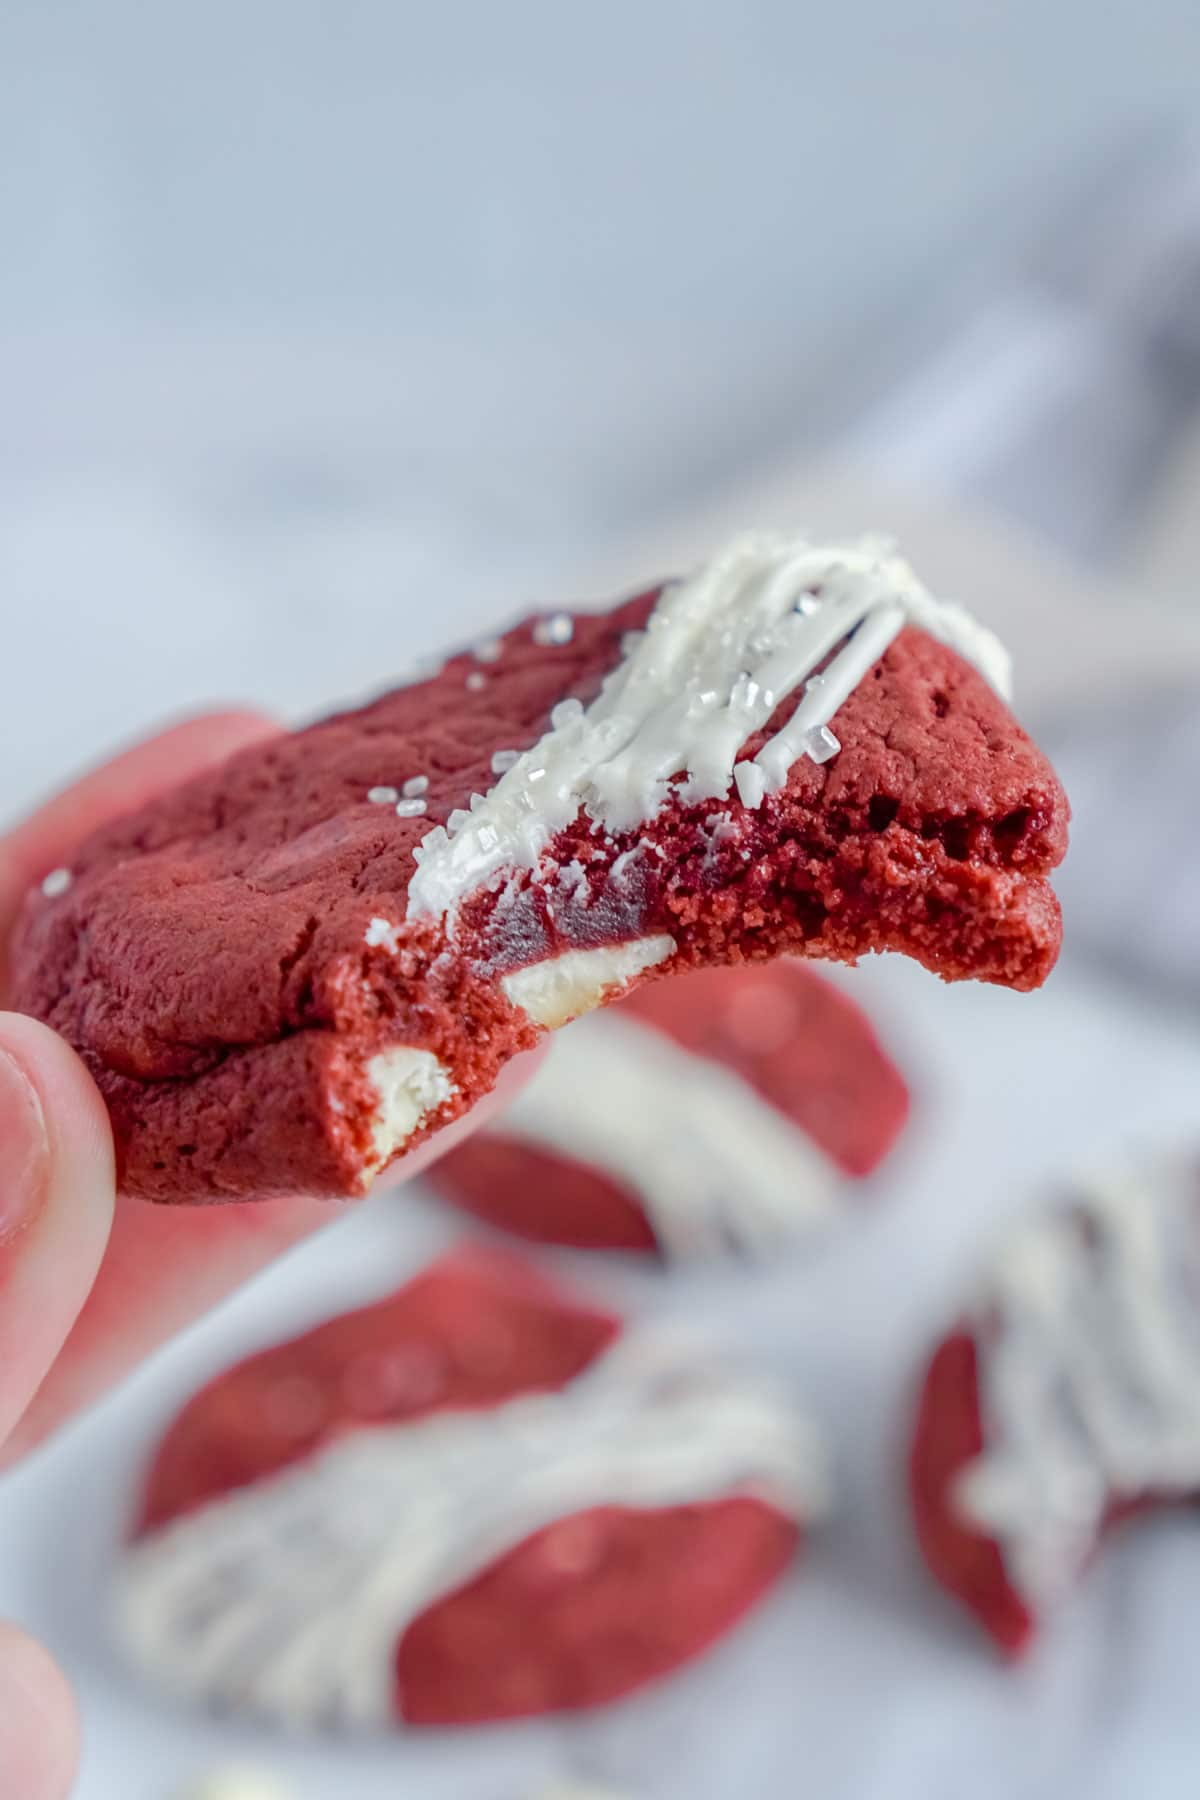 Woman's hand holding a red velvet cookie with frosting